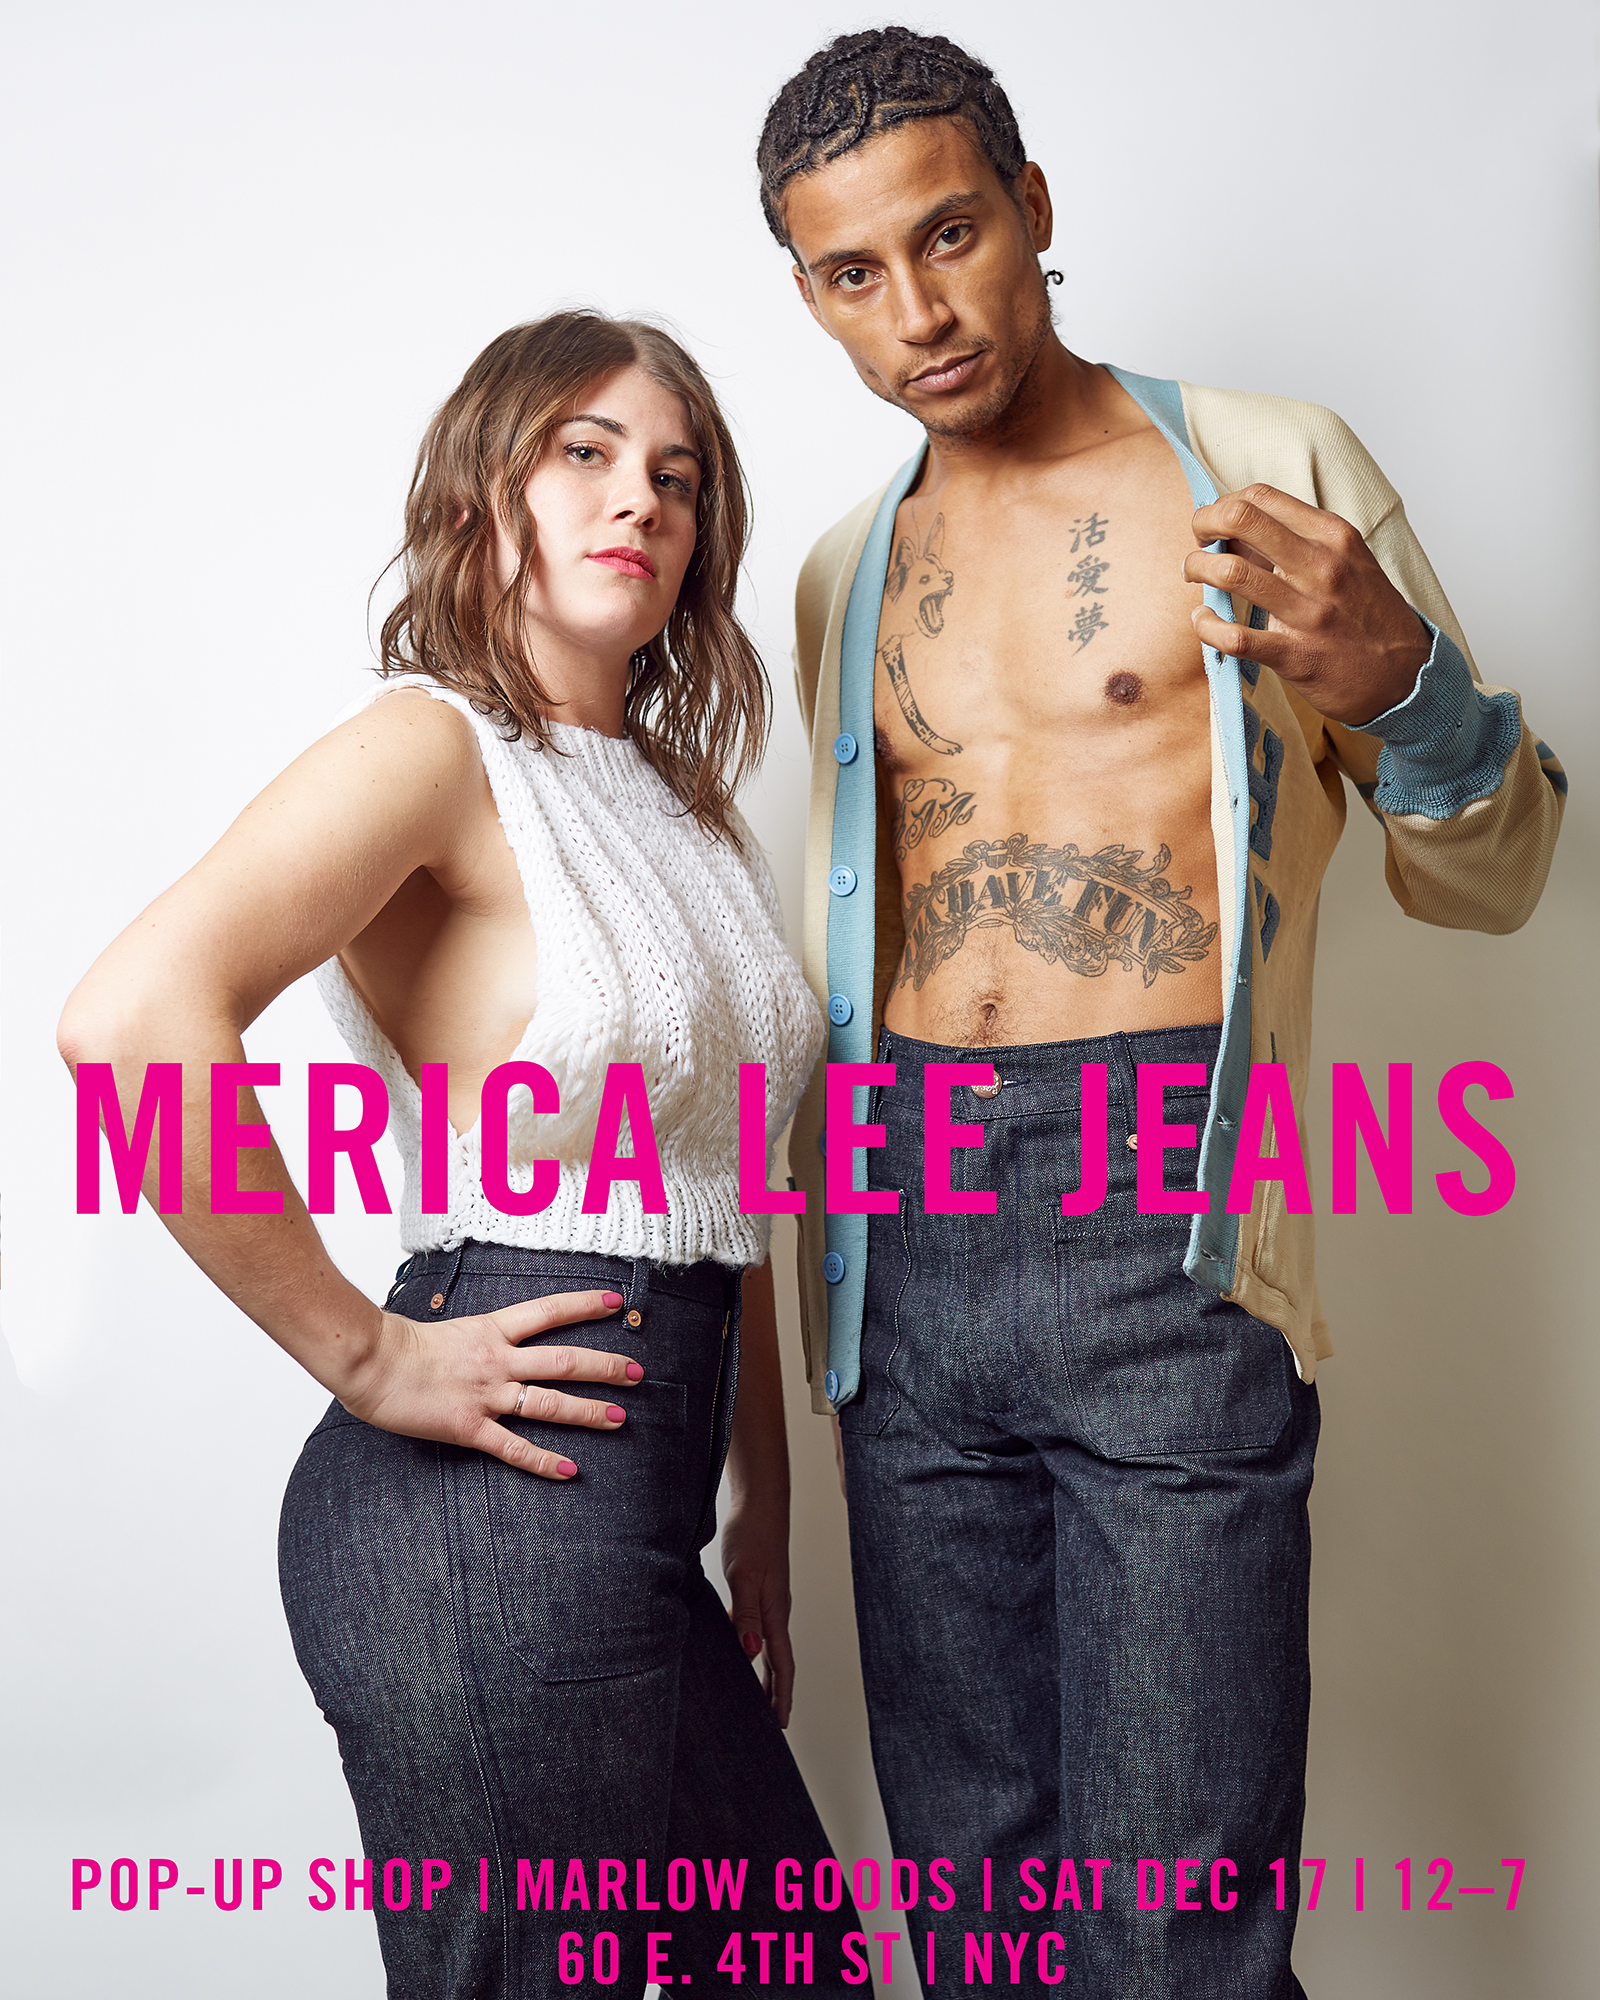 Merica-Lee-Jeans-Marlow-Goods-Pop-Up